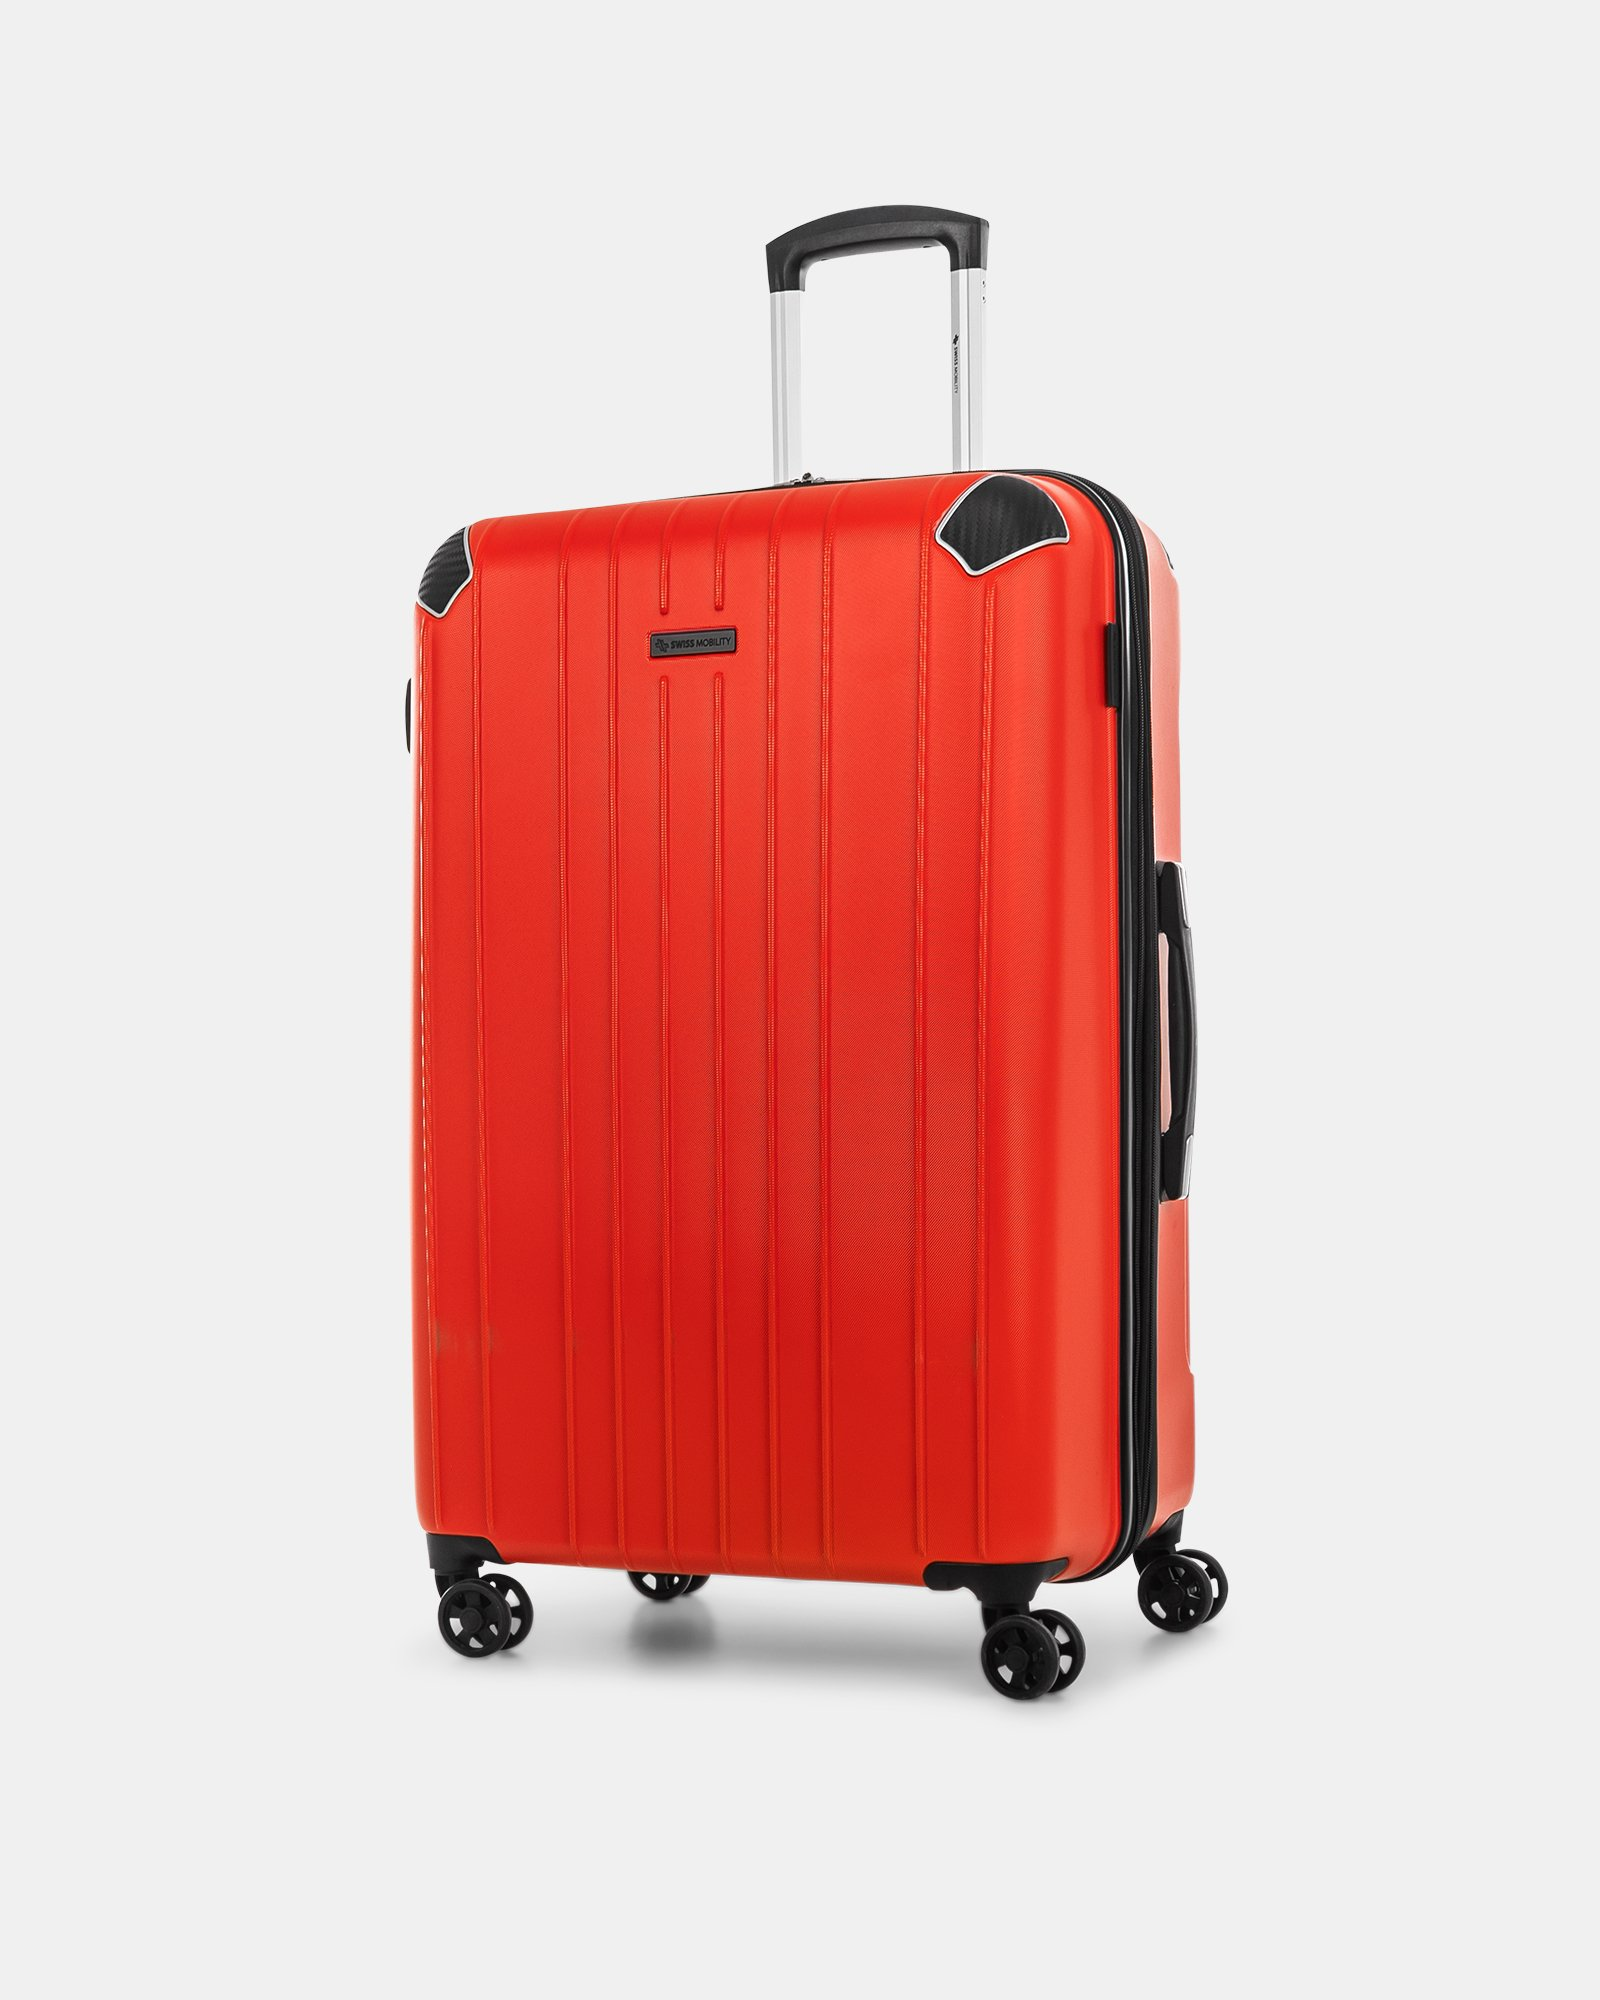 """PVG - 30"""" LIGHTWEIGHT HARDSIDE LUGGAGE - RED - Swiss Mobility - Zoom"""